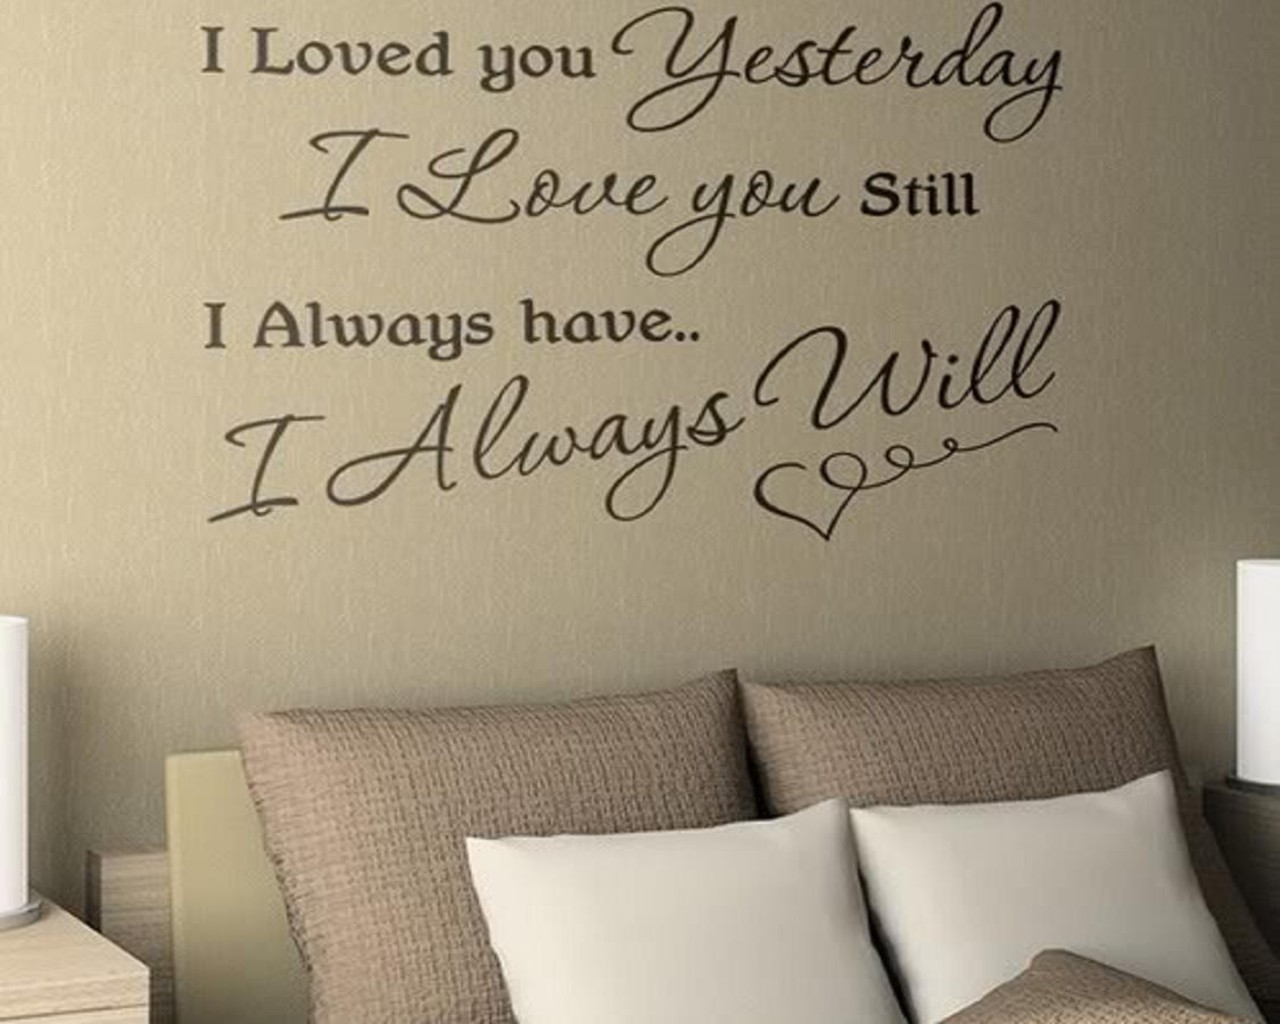 Love Quote Wallpapers, Pictures, Images 1280x1024